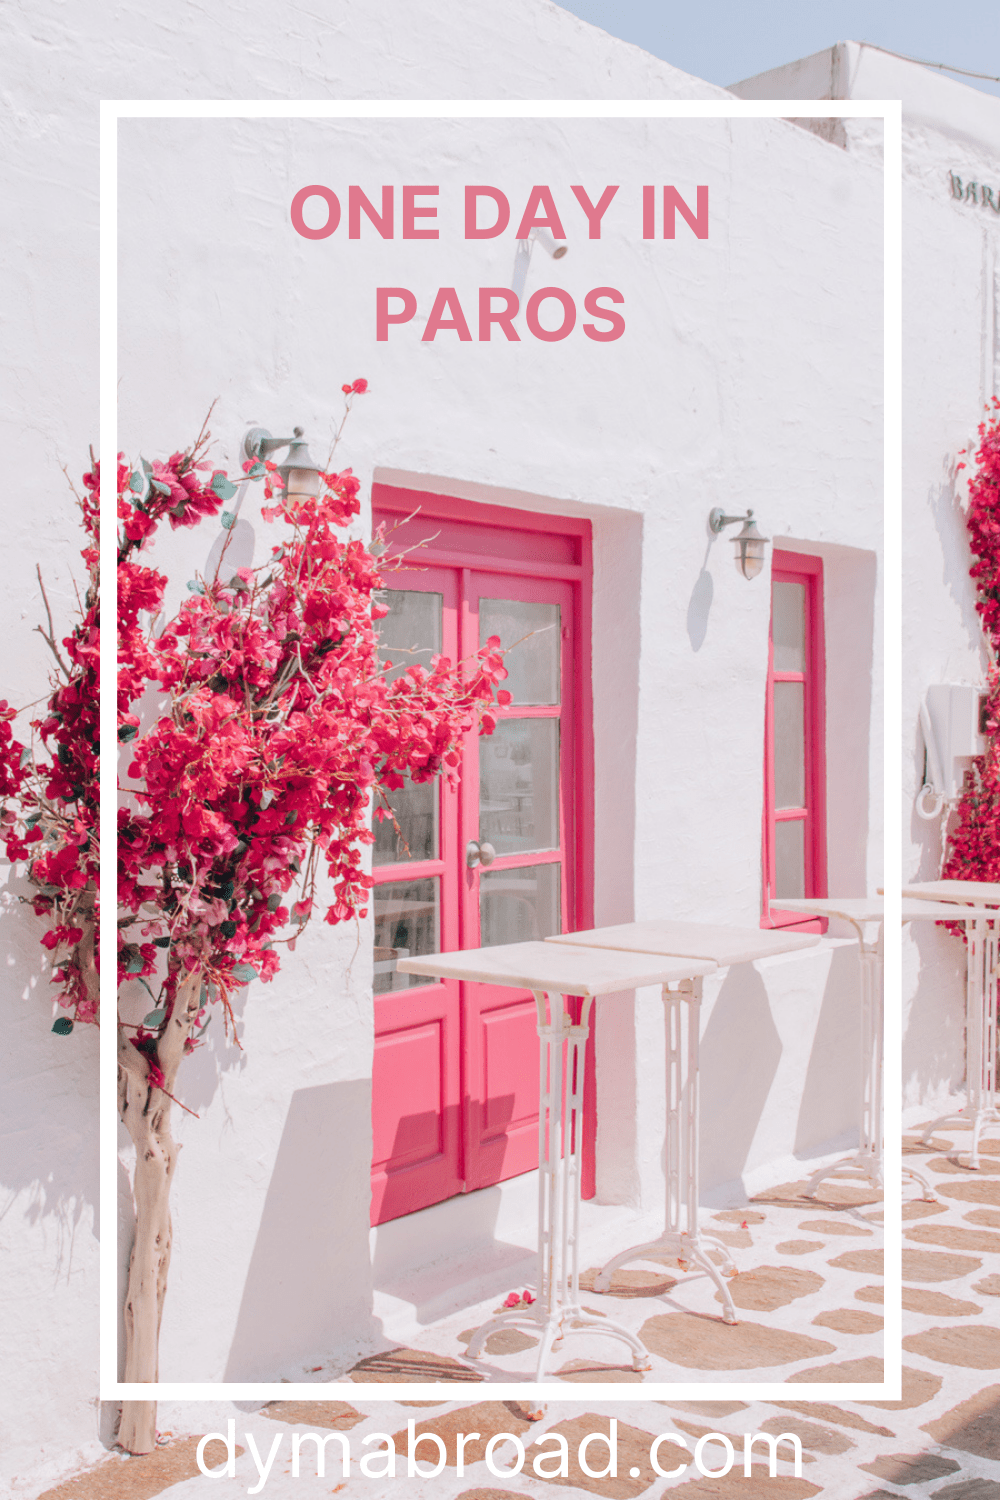 One day in Paros Pinterest image